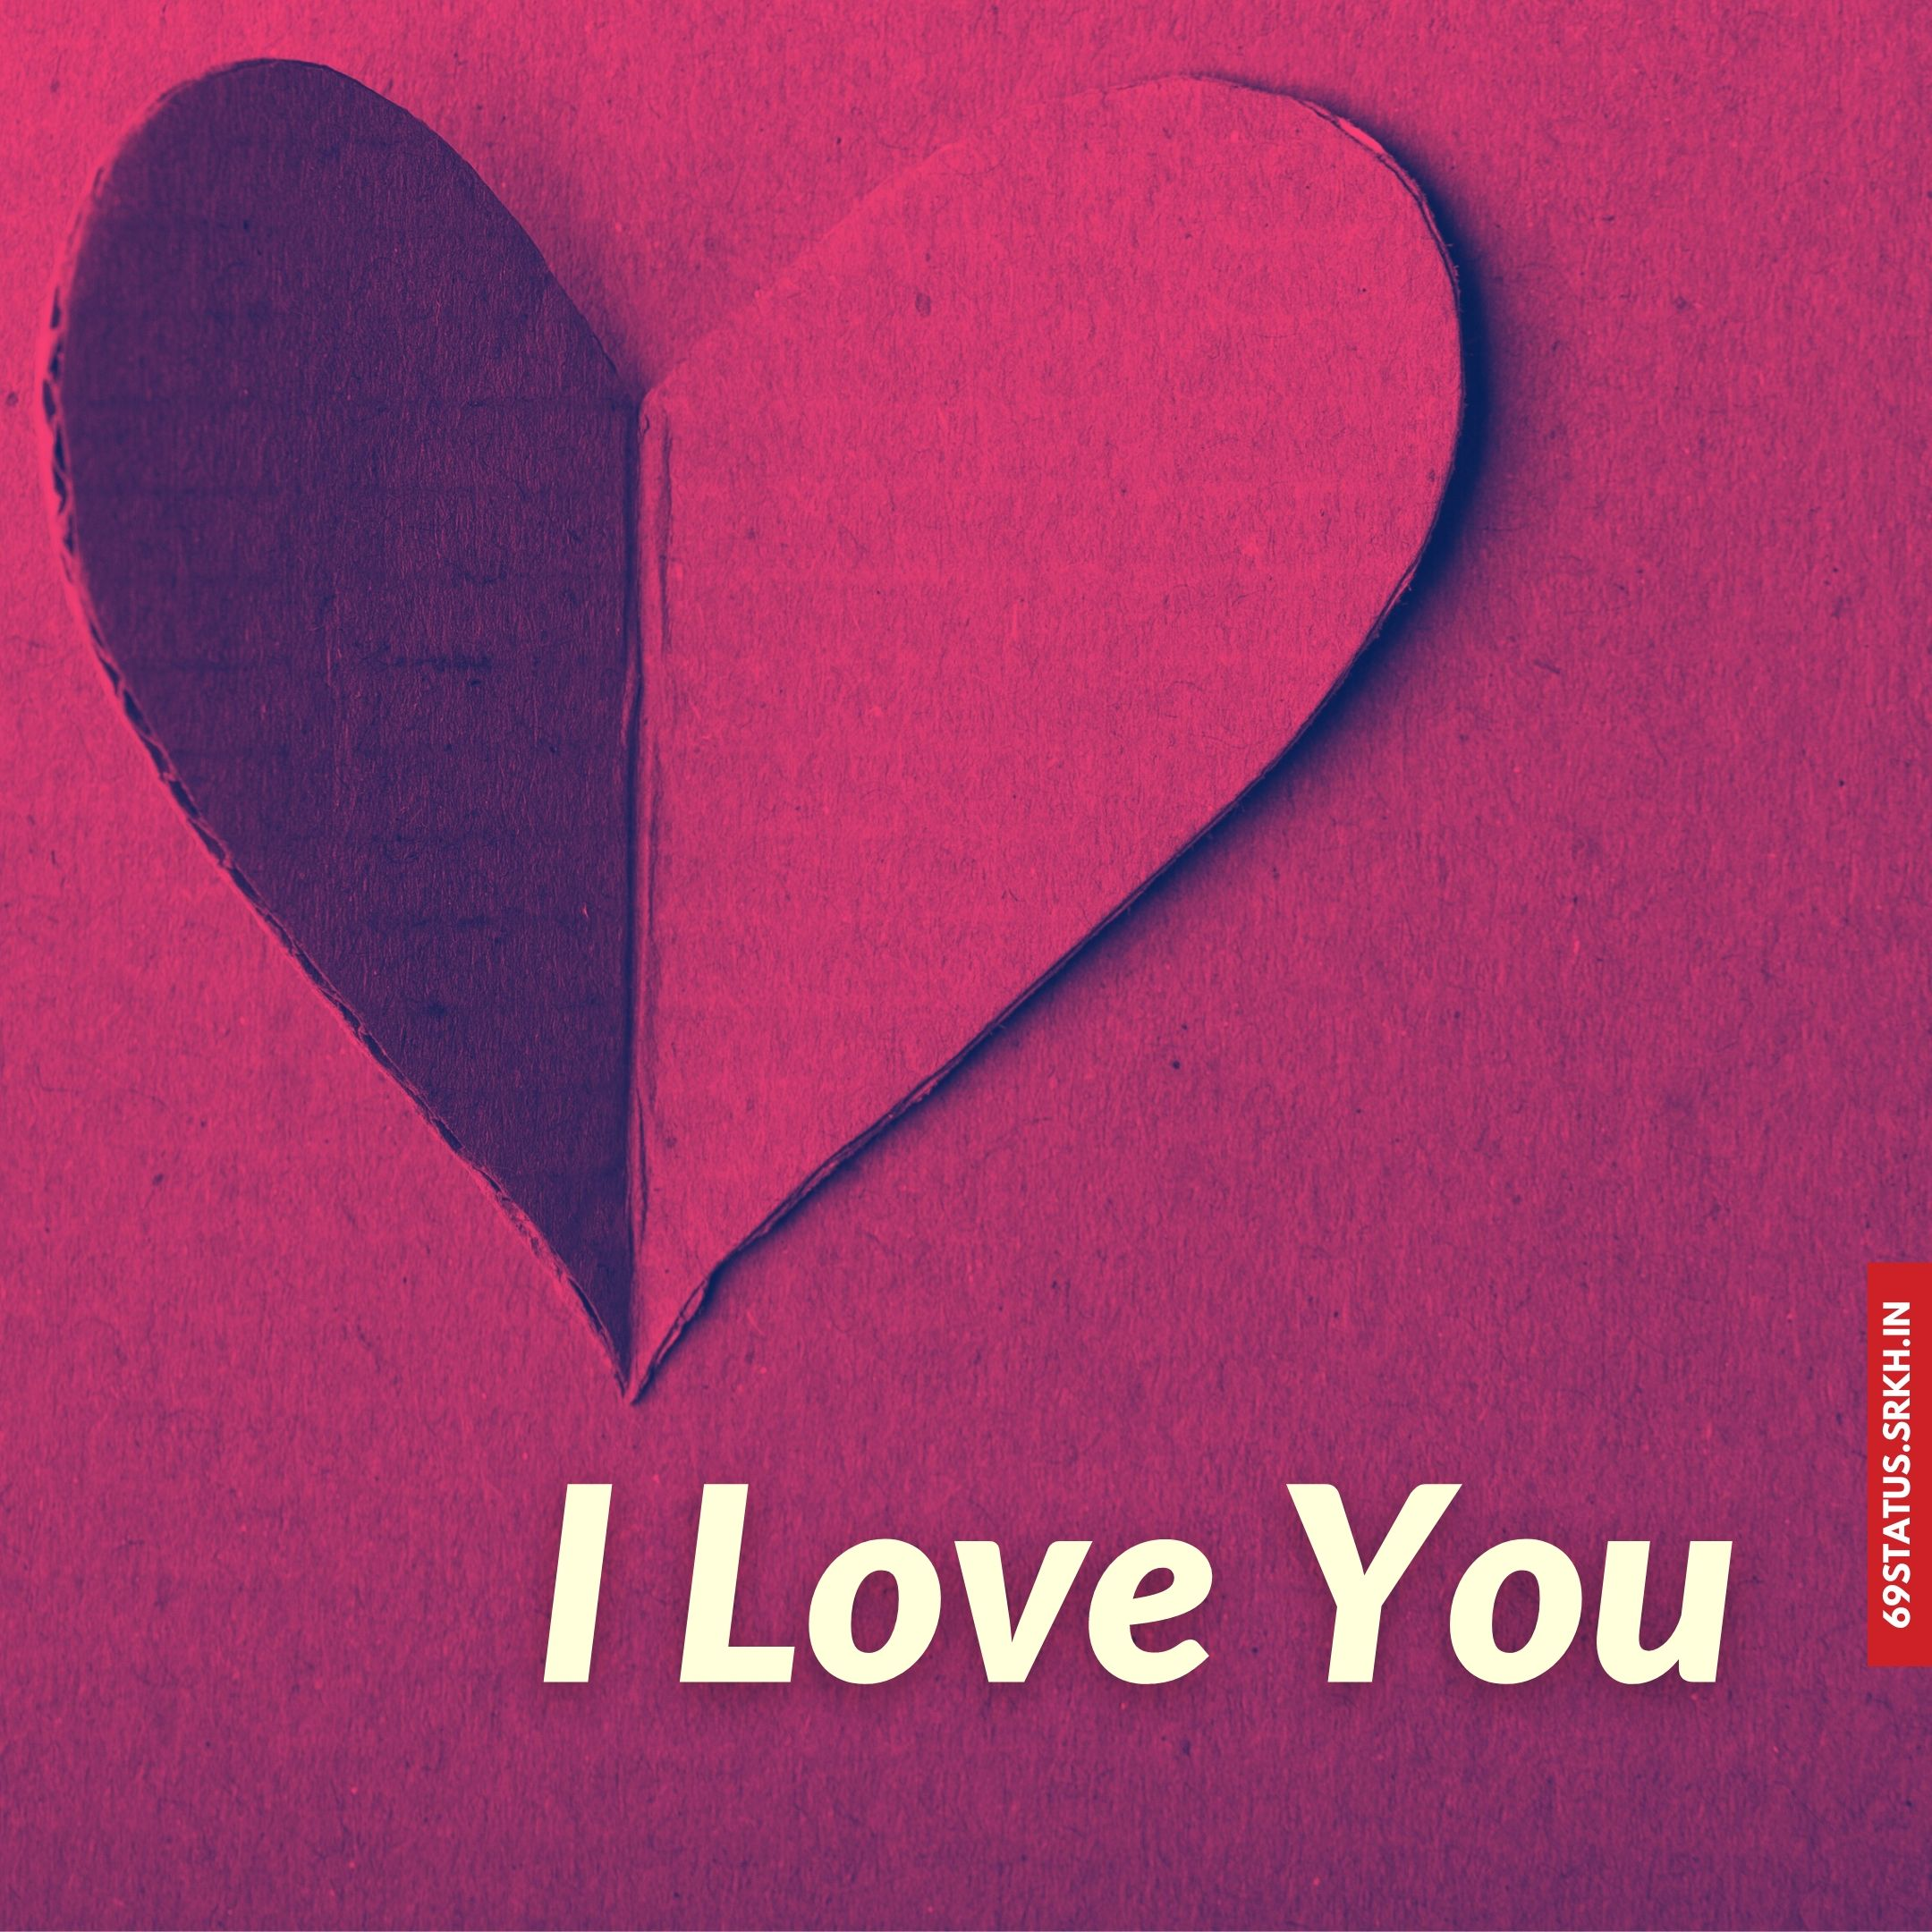 Www I Love You images com hd full HD free download.